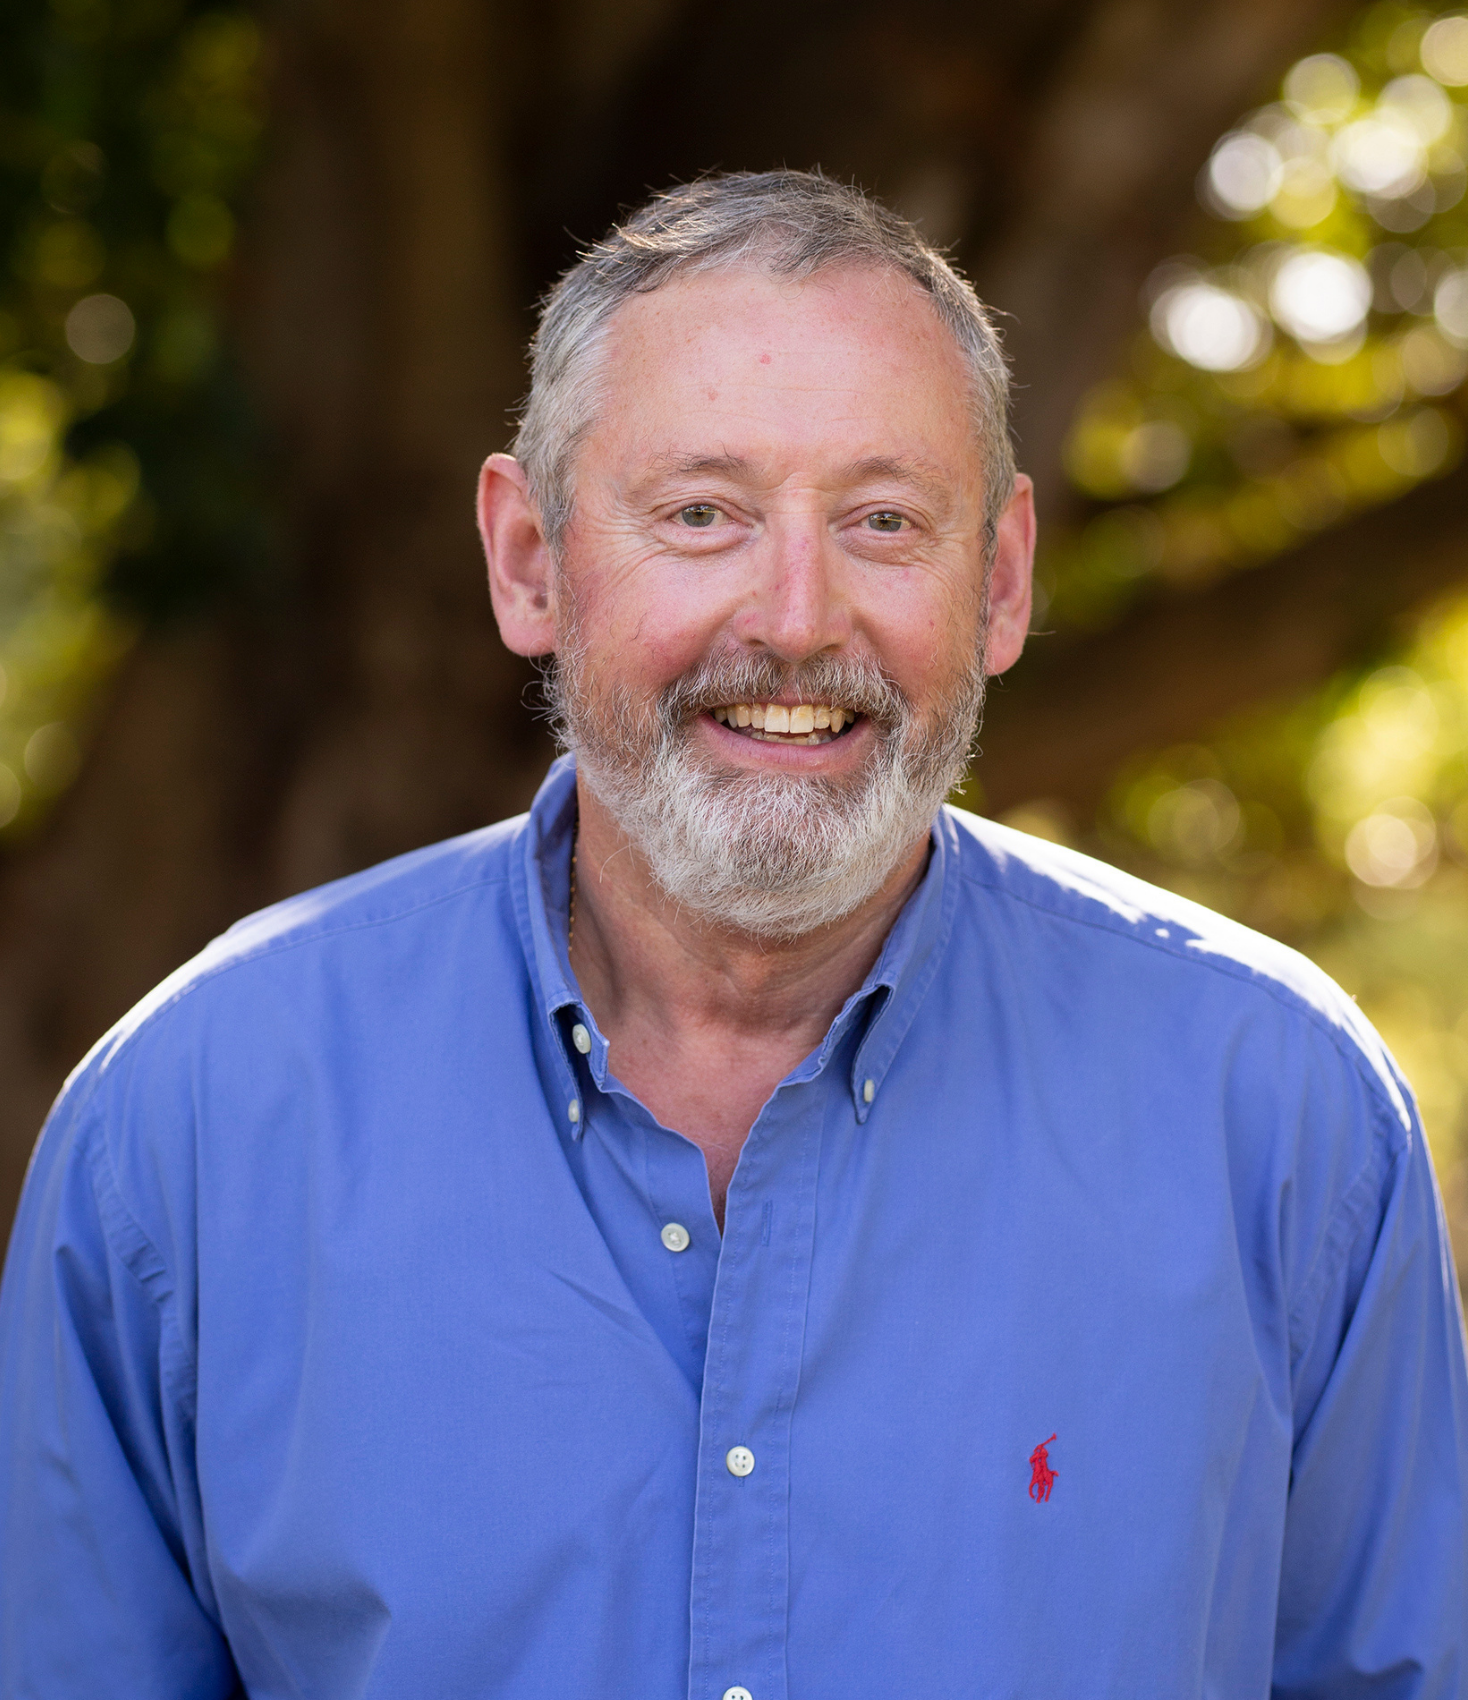 smiling older man with grey hair and a grey beard, wearing a blue button down shirt with green foliage in the background